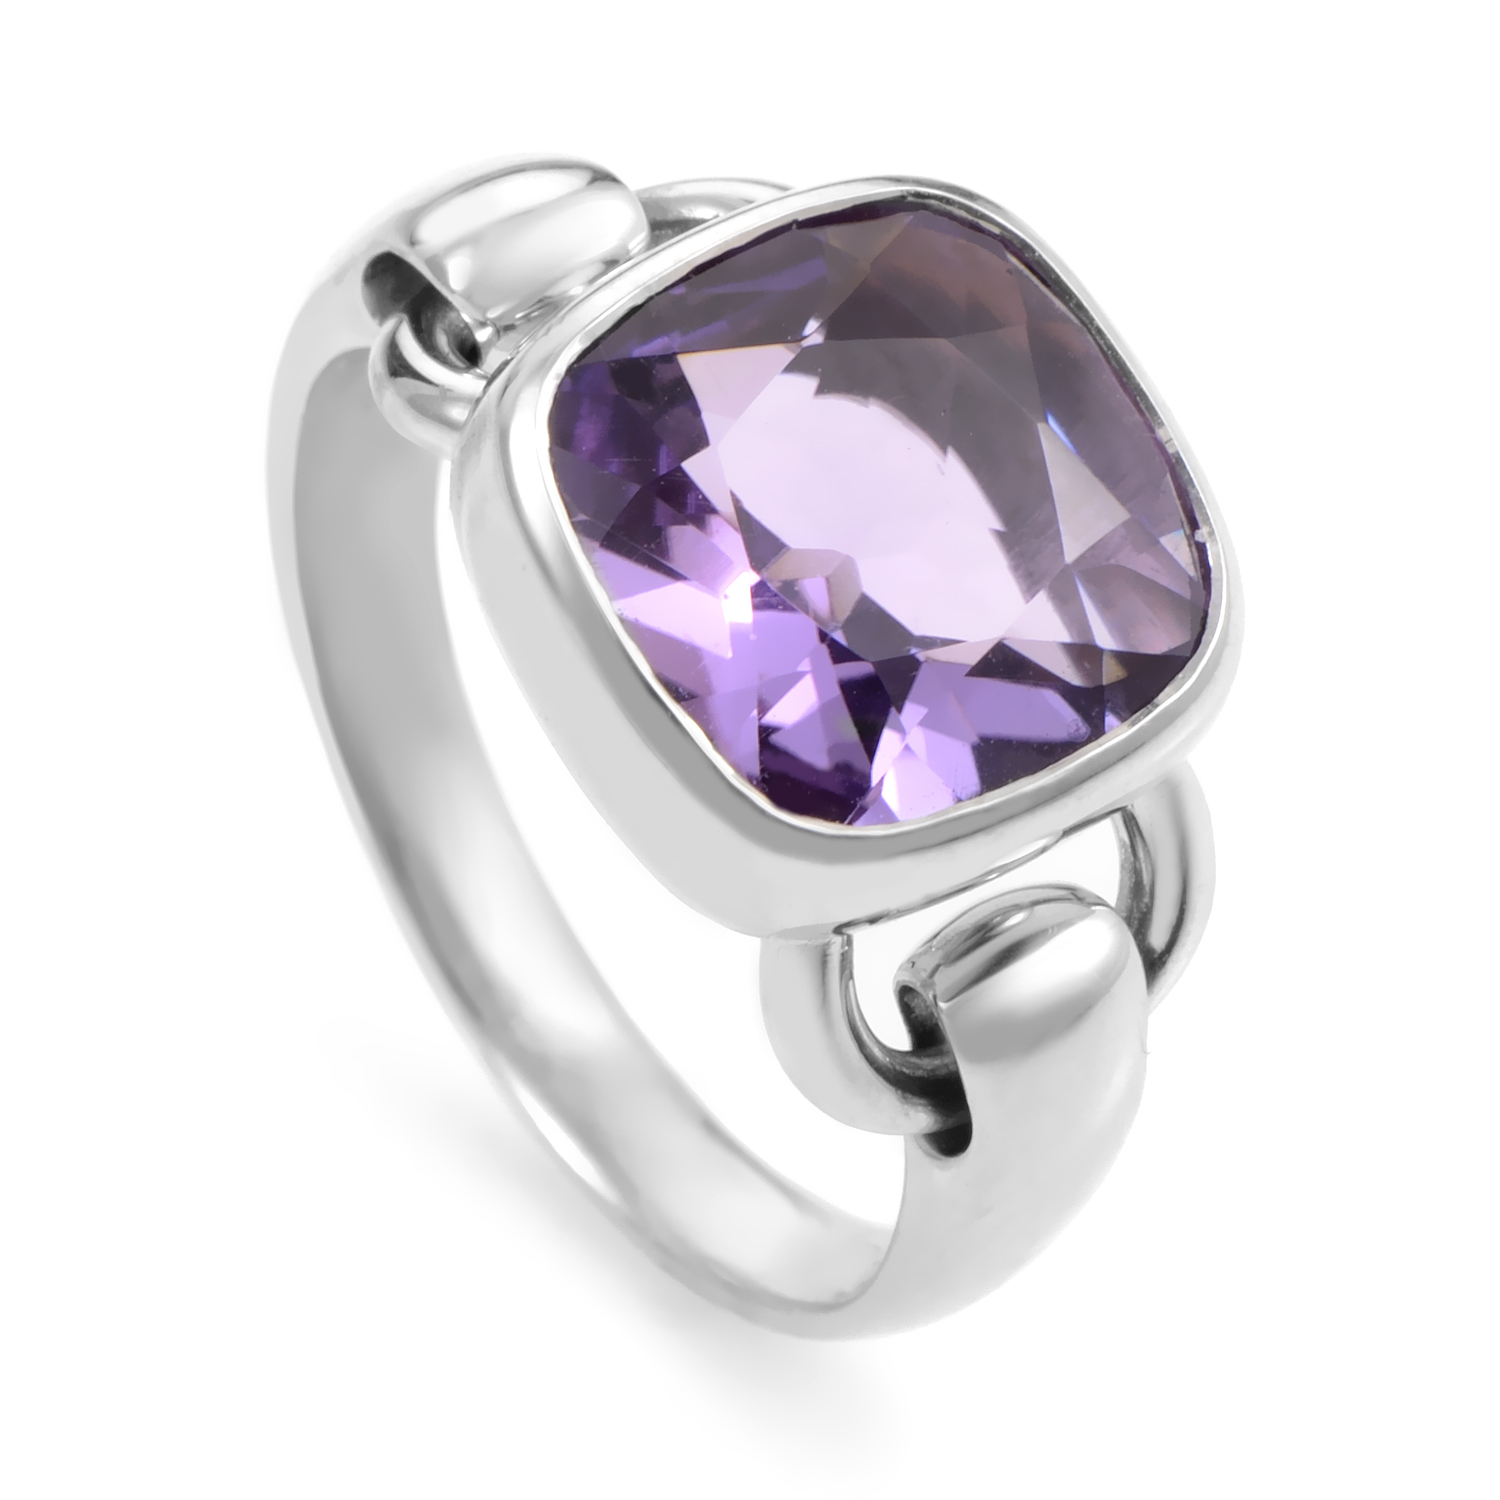 Womens 18K White Gold Amethyst Ring PPD2660